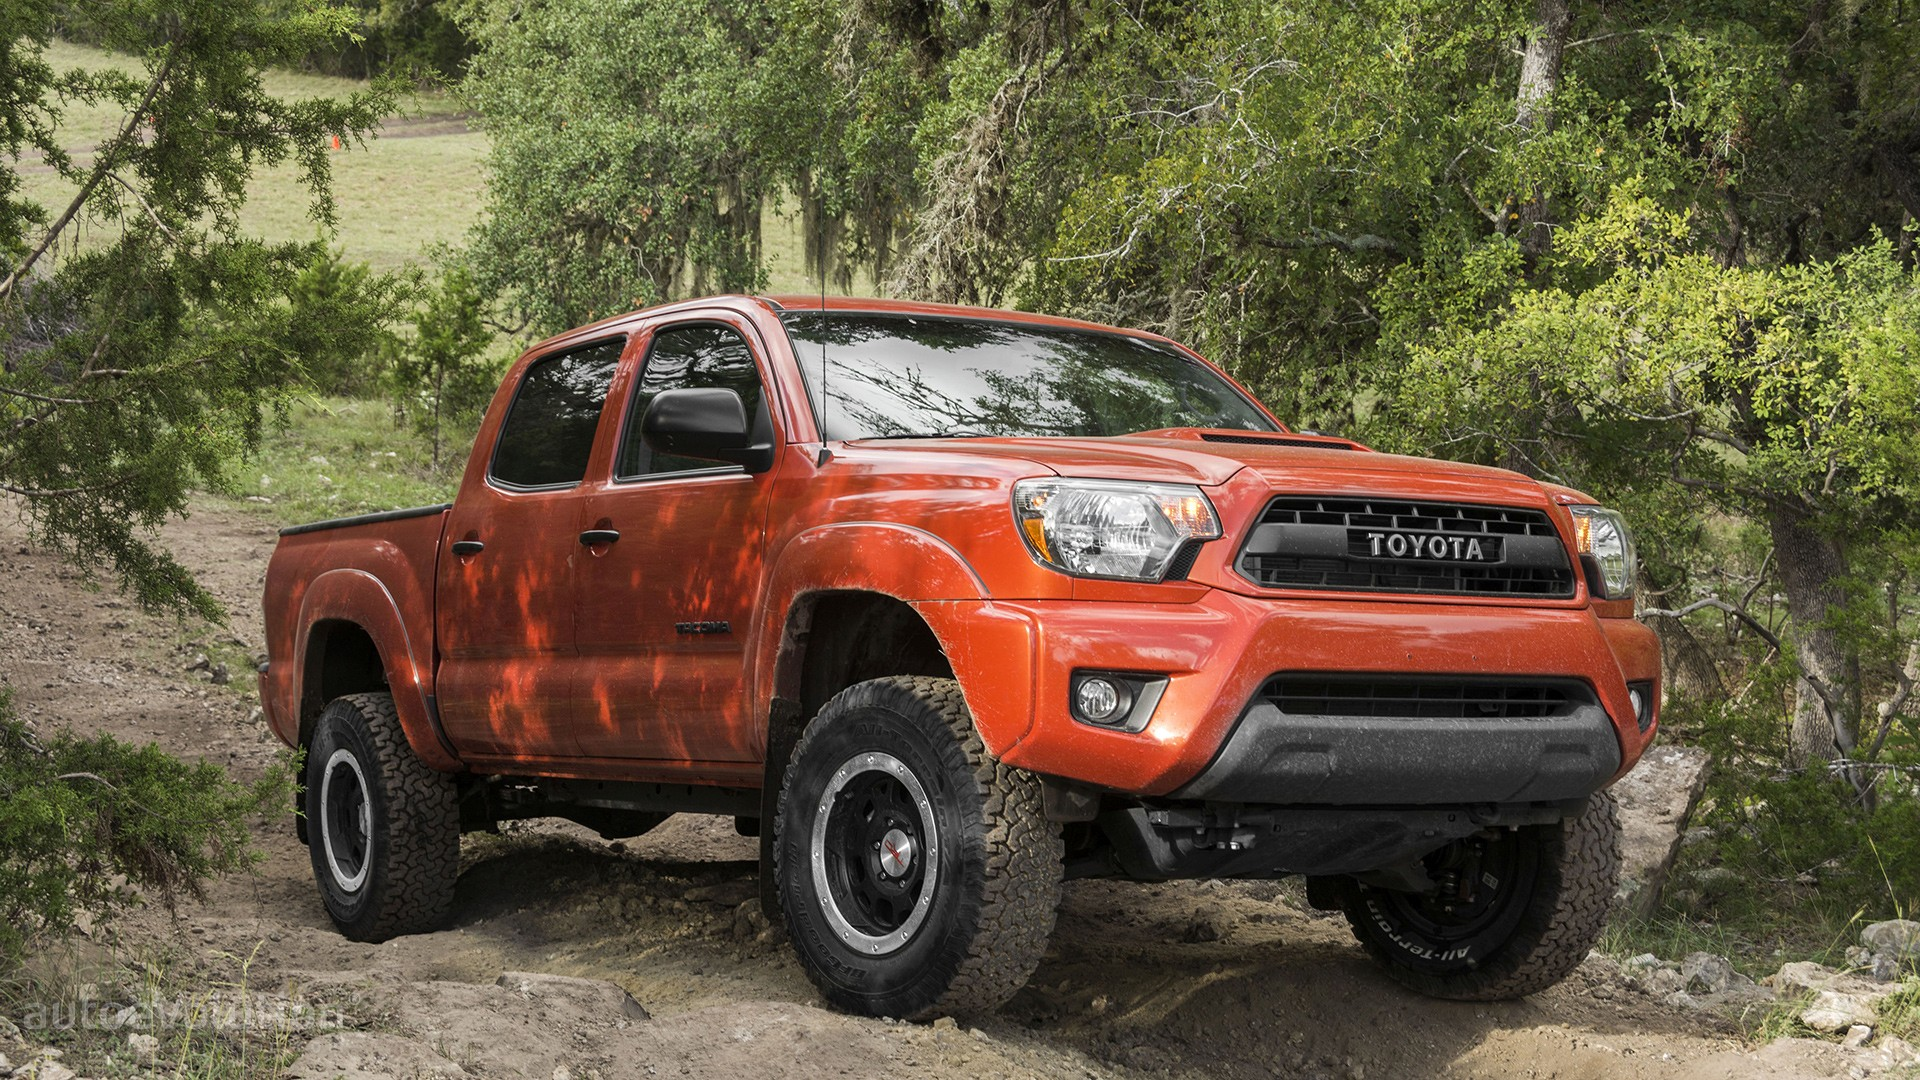 2015 toyota tacoma trd pro hd wallpapers conquering jurassic world autoevolution. Black Bedroom Furniture Sets. Home Design Ideas